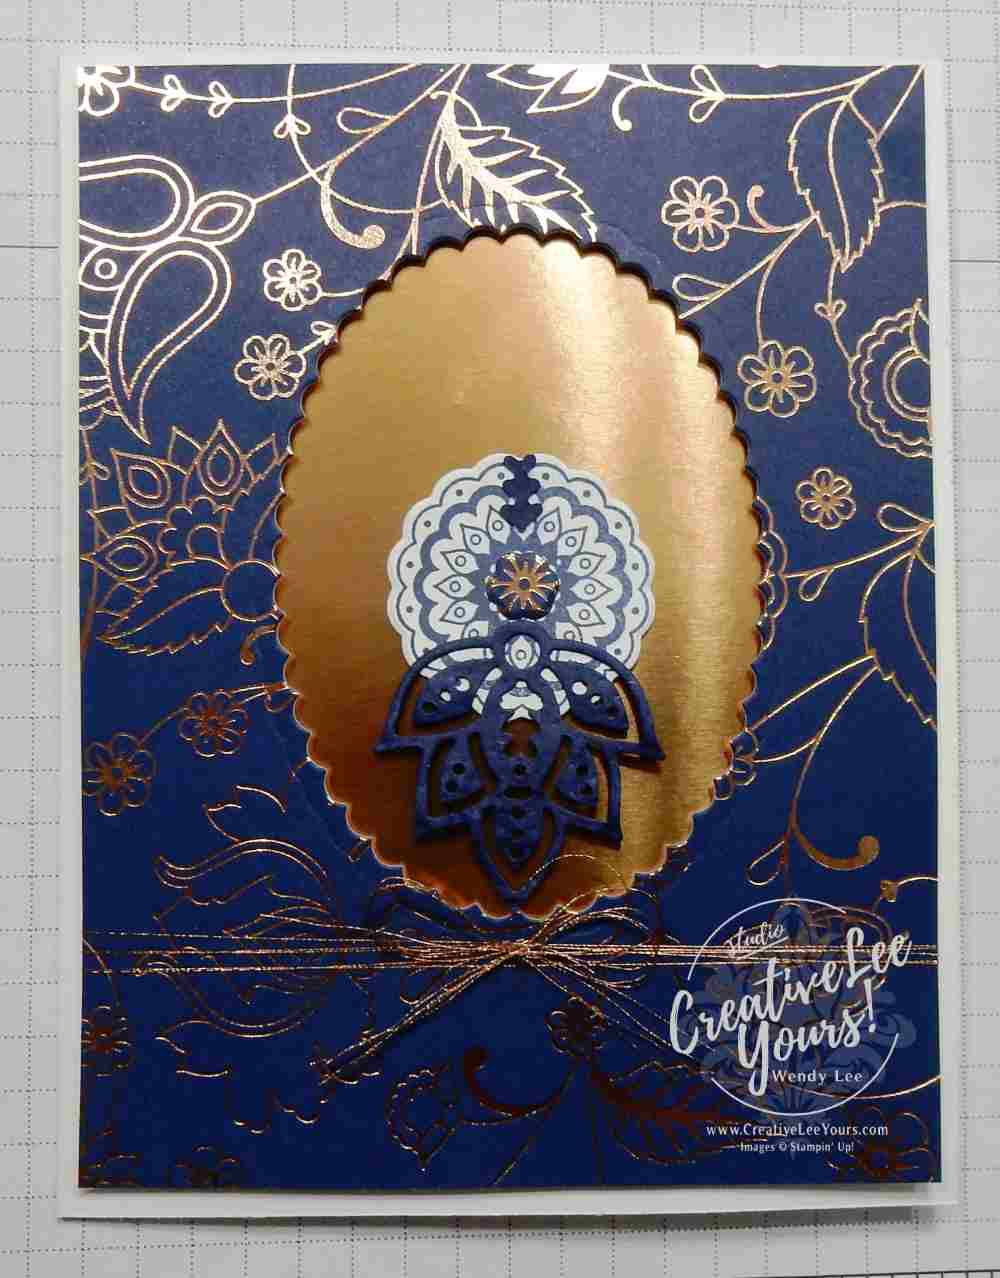 Paisley Owl by Wendy Lee, Stampin Up, #creativeleeyours, paisley framelits, Petals & Paisleys, Paisley & Posie stamp set, layering ovals, floral phrases stamp set, hand made thank you card